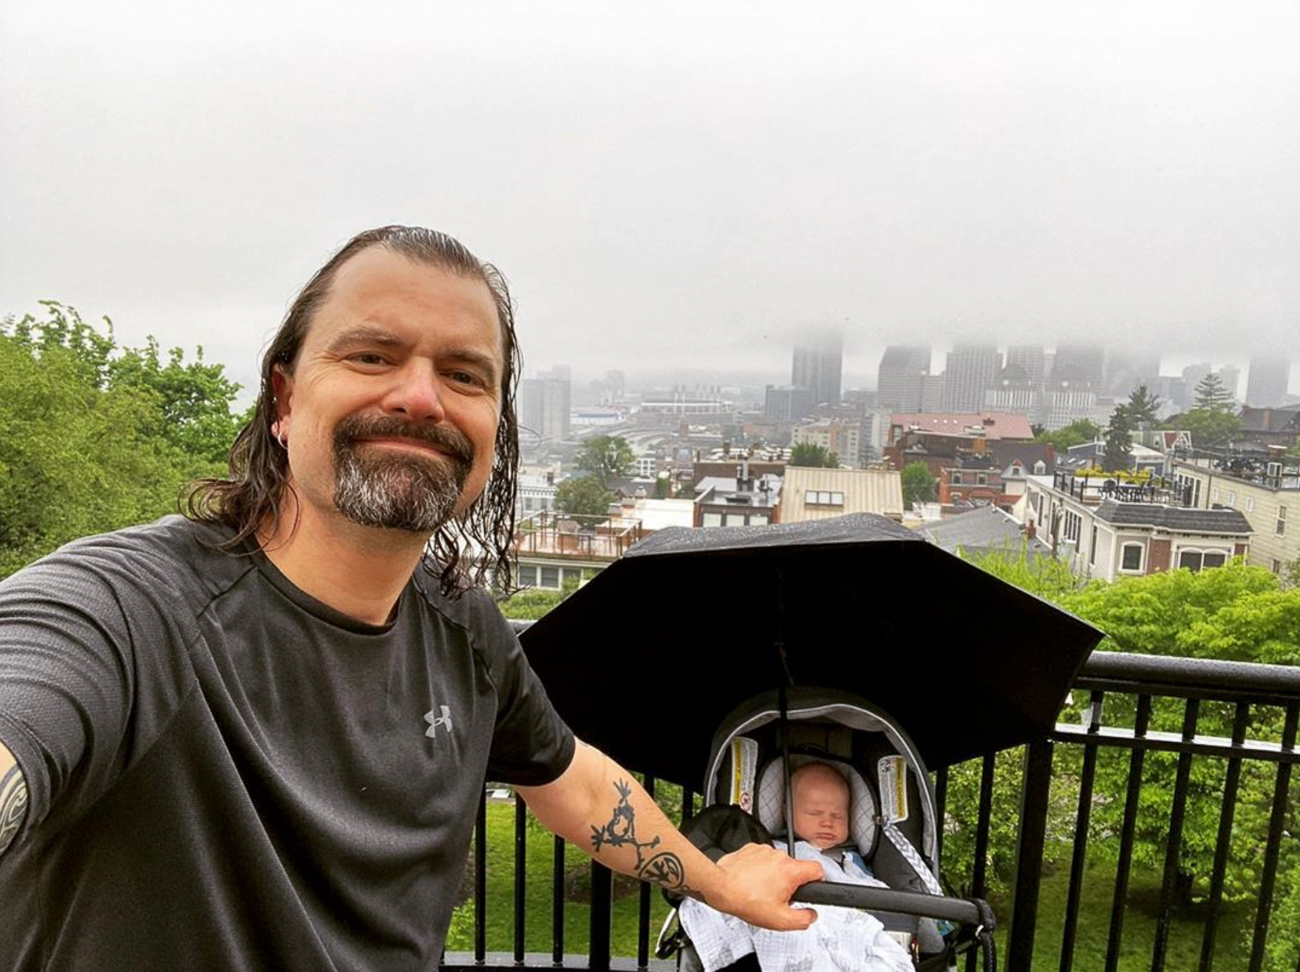 Since April 5th—one month into little James' life—Mike and his infant son have walked Cincinnati and Northern Kentucky every day, achieving impressive milestones together. / Image courtesy of Mike Moroski // Published: 8.9.20<p></p><p></p>